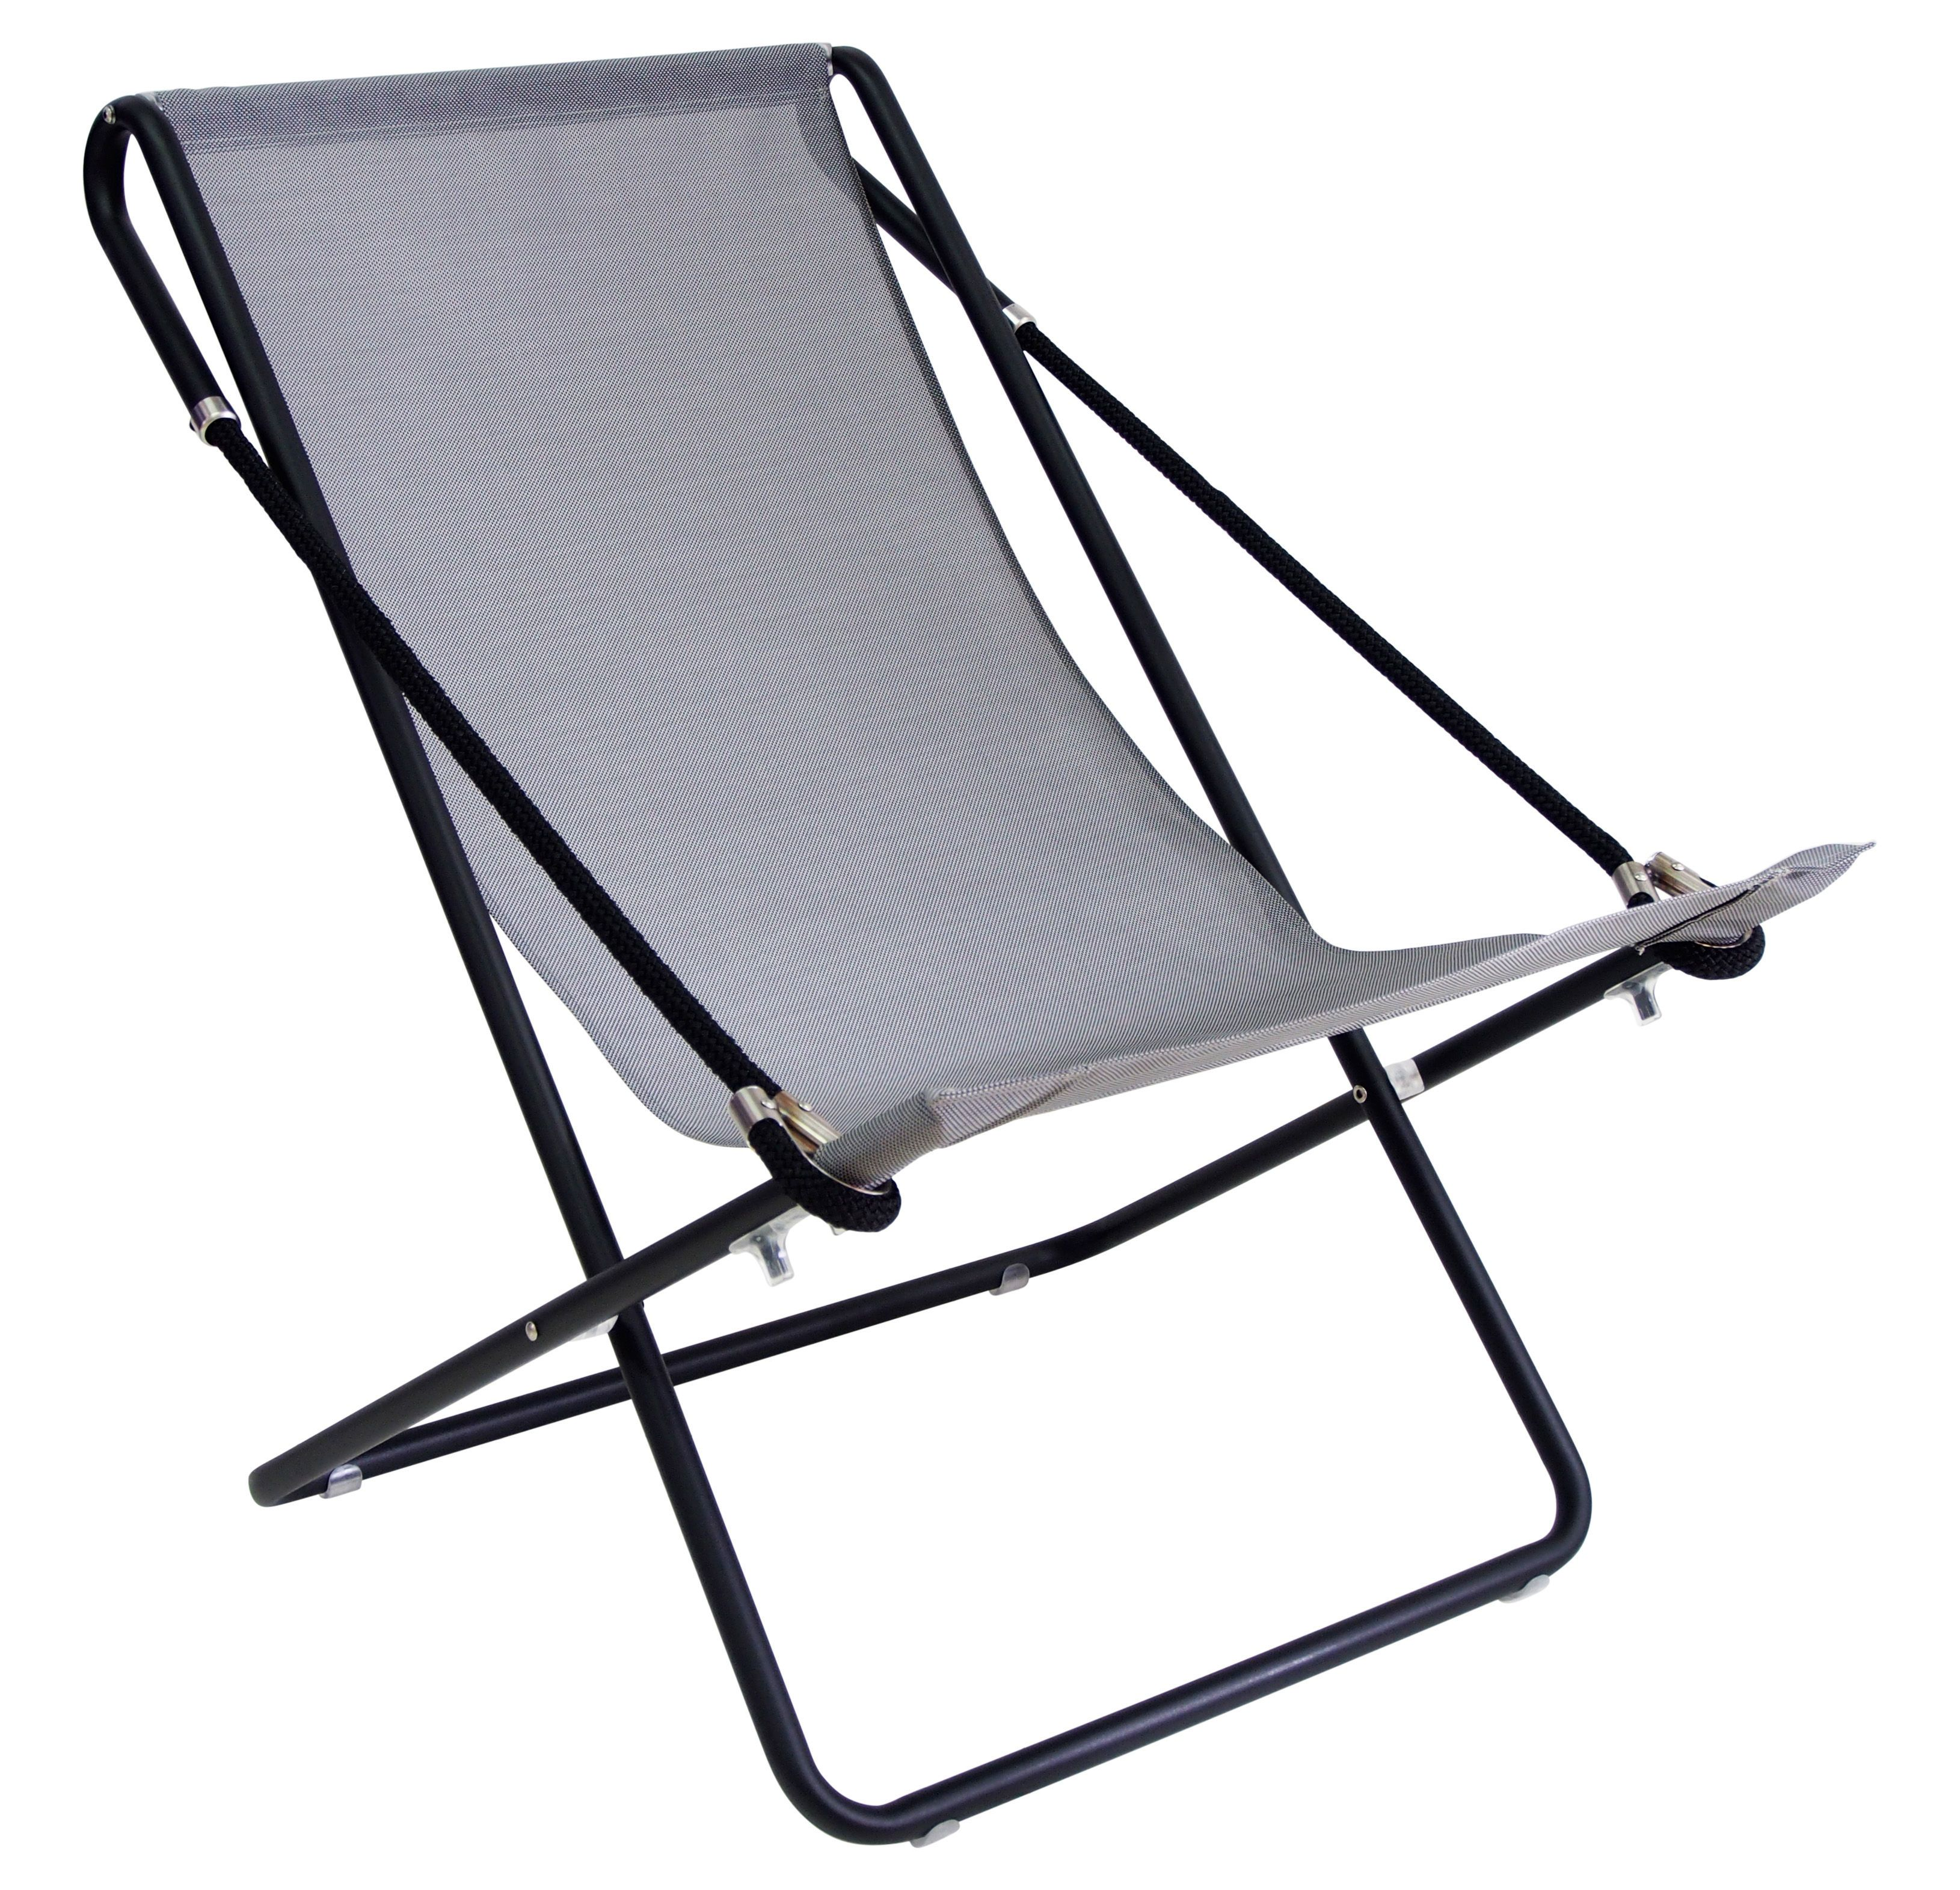 Phenomenal Vetta Reclining Chair Foldable By Emu Inspiration Squirreltailoven Fun Painted Chair Ideas Images Squirreltailovenorg